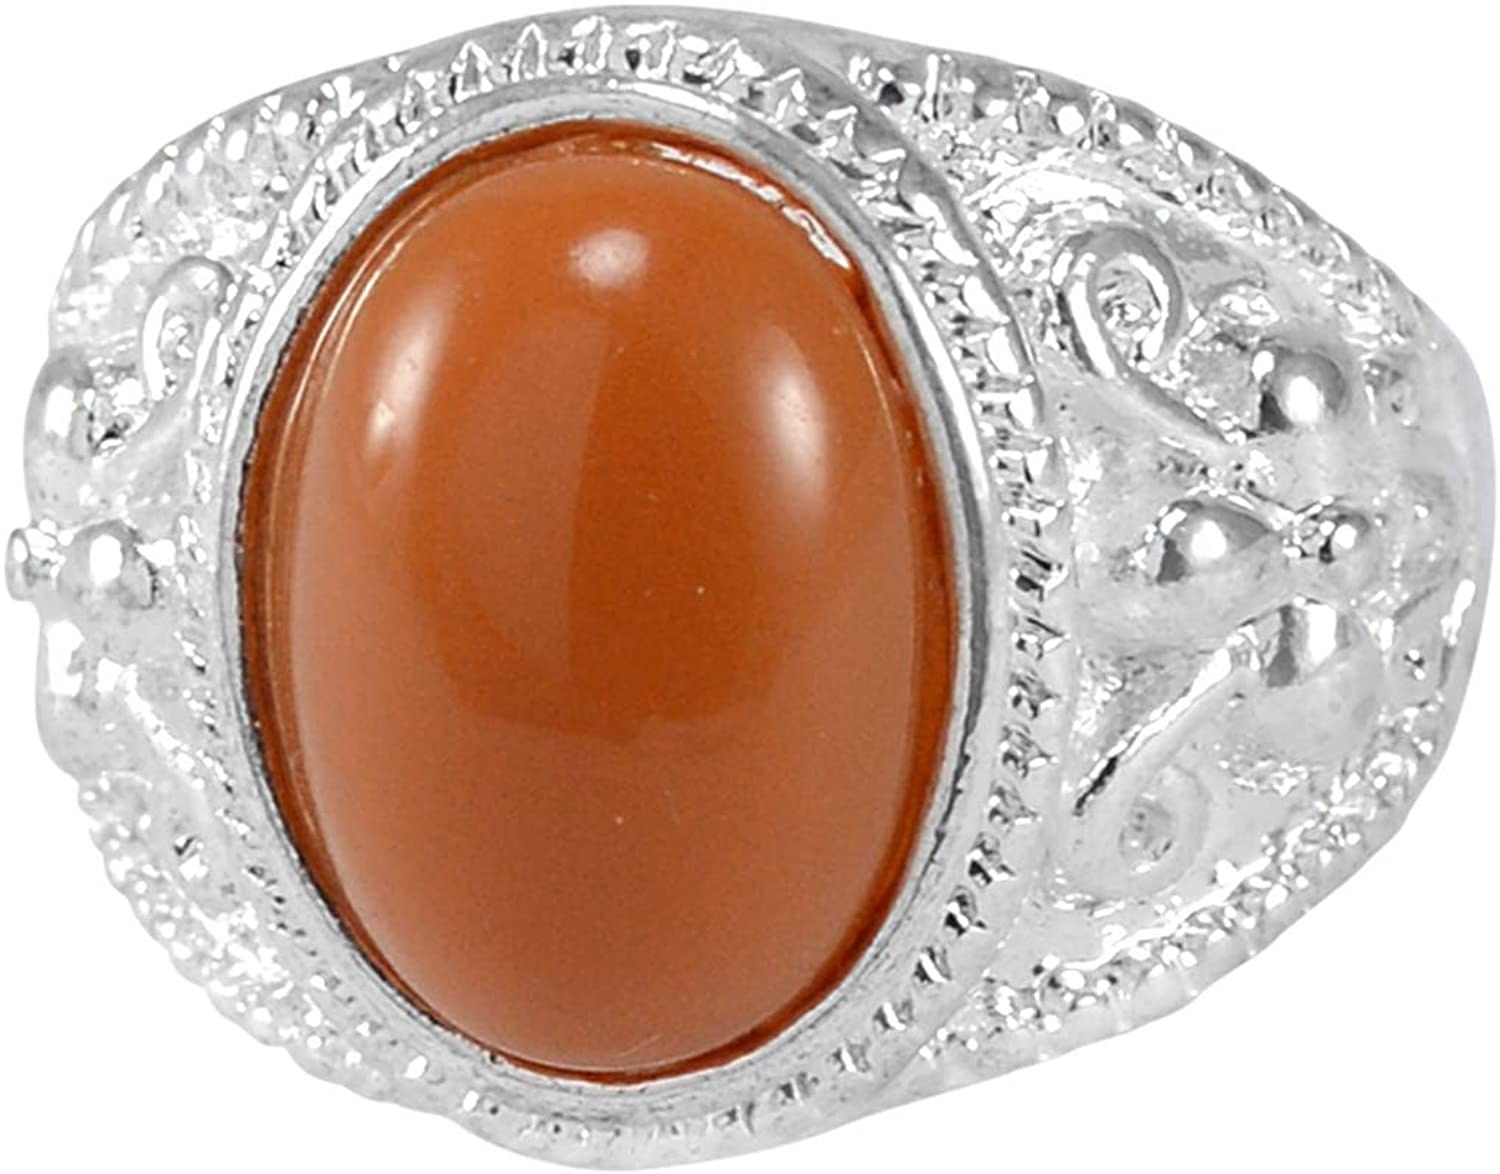 Saamarth Impex Jaipur Rajasthan India 14x10mm Brown Stone with 925 Silver Plated Ring Sz 10.25 Handmade Jewelry Manufacturer